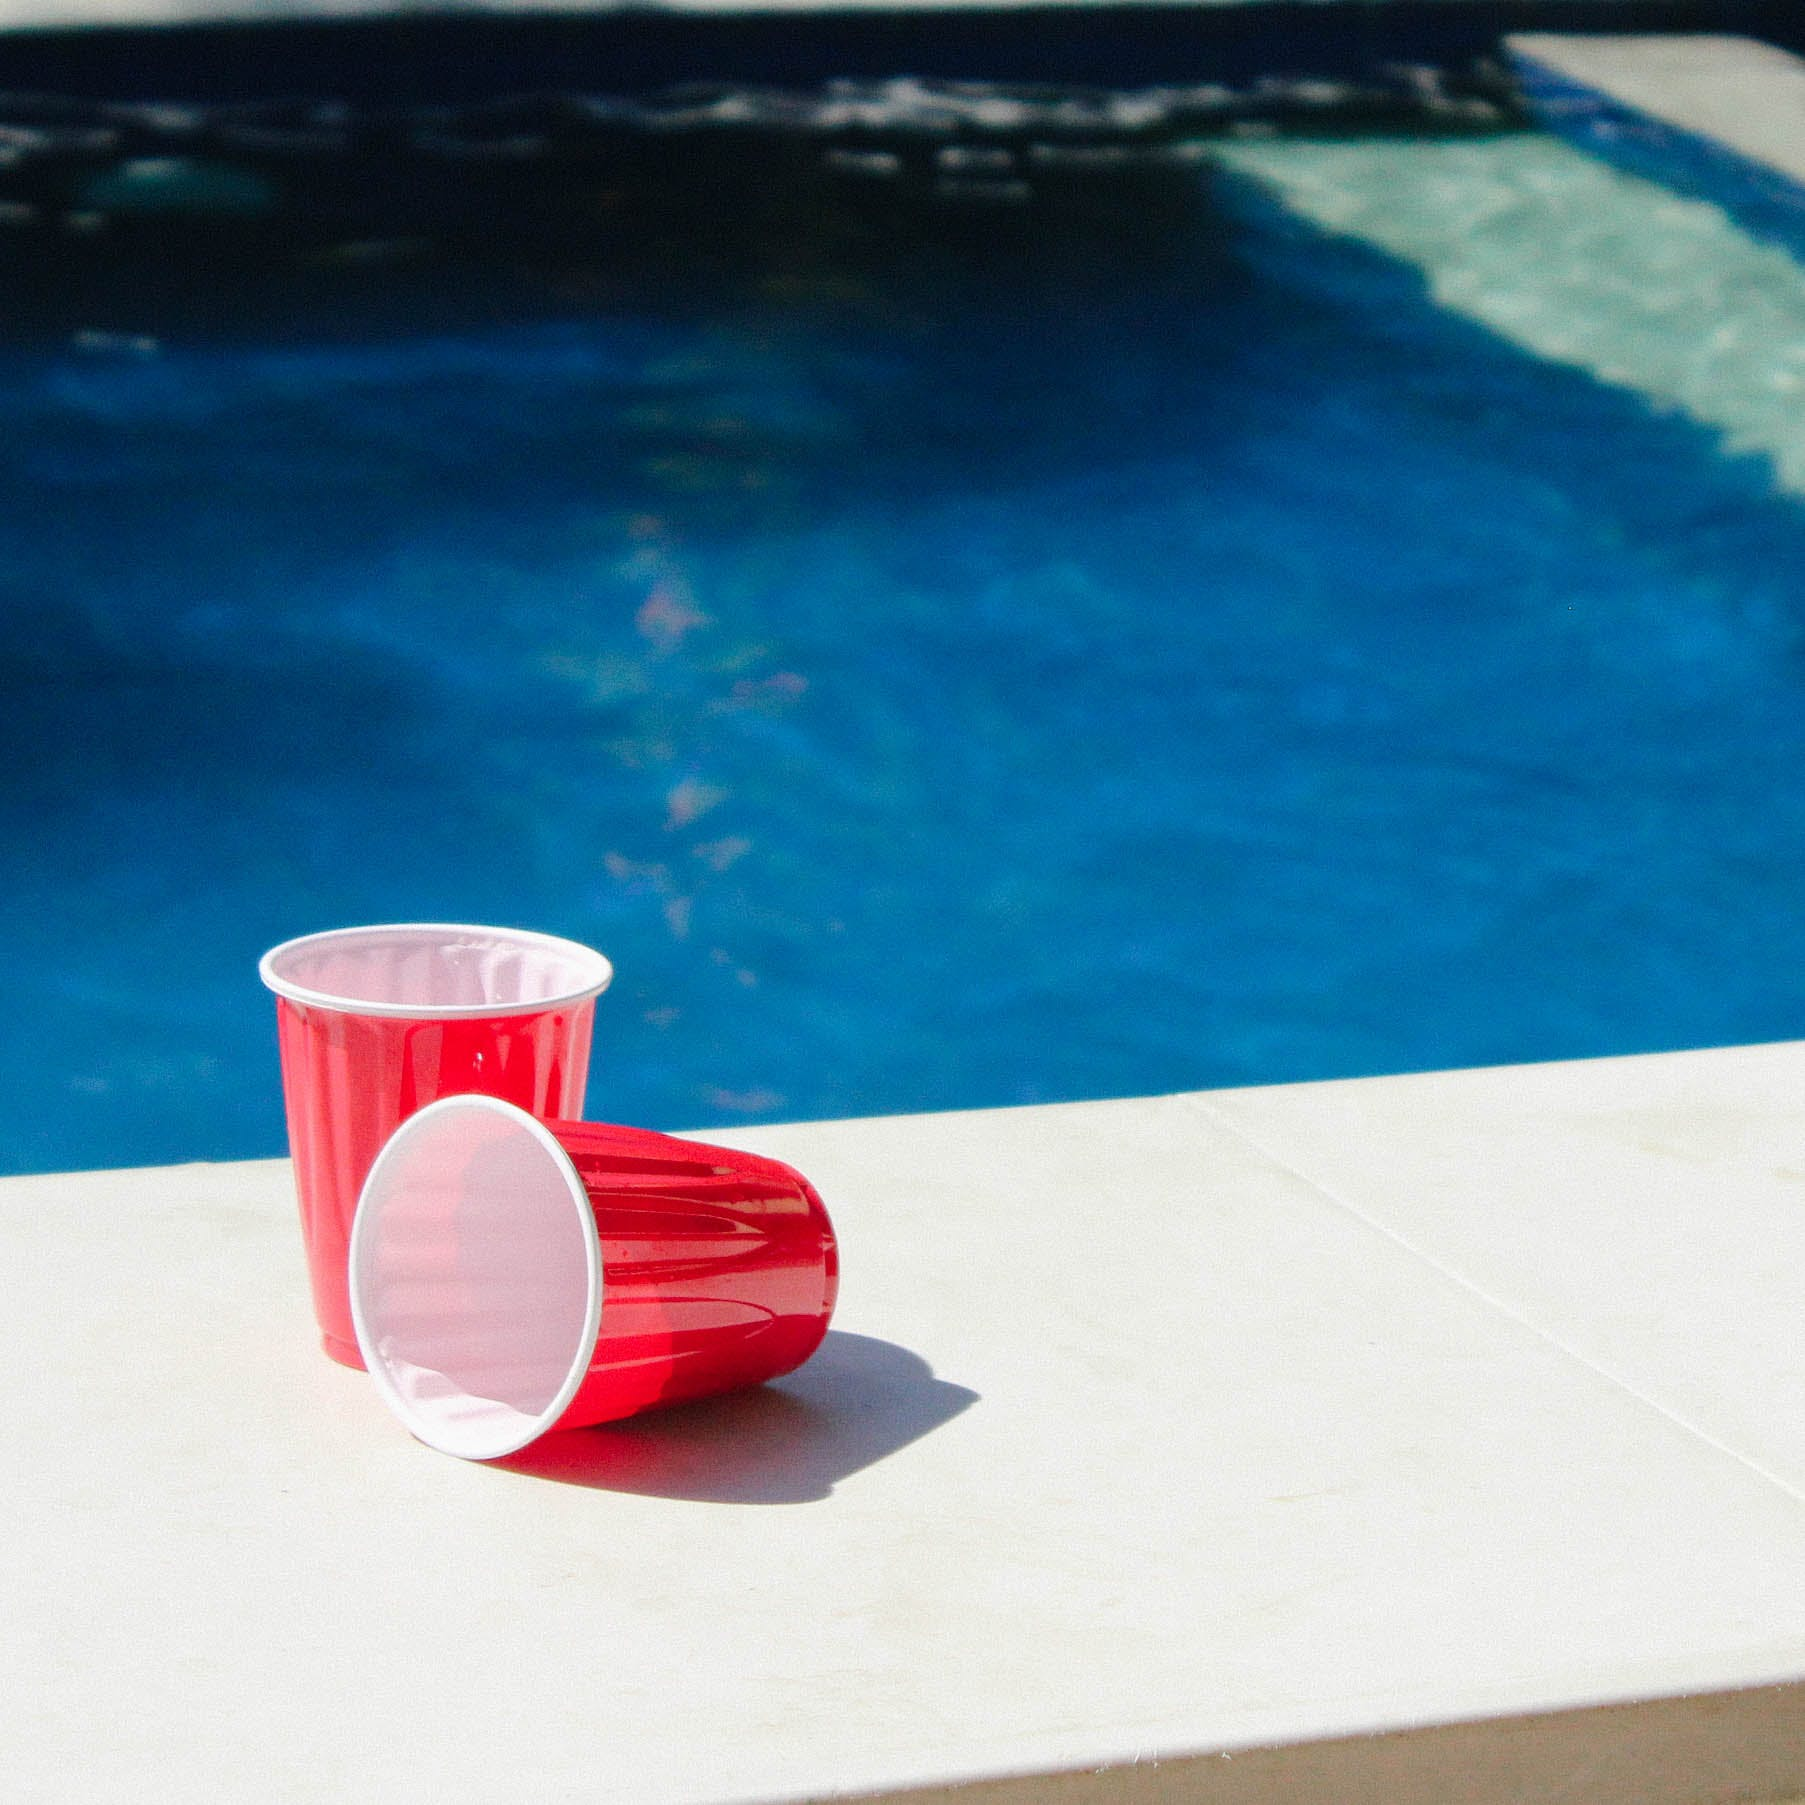 Two Red-and-white Disposable Cups on Gray Ceramic Tiles Photo